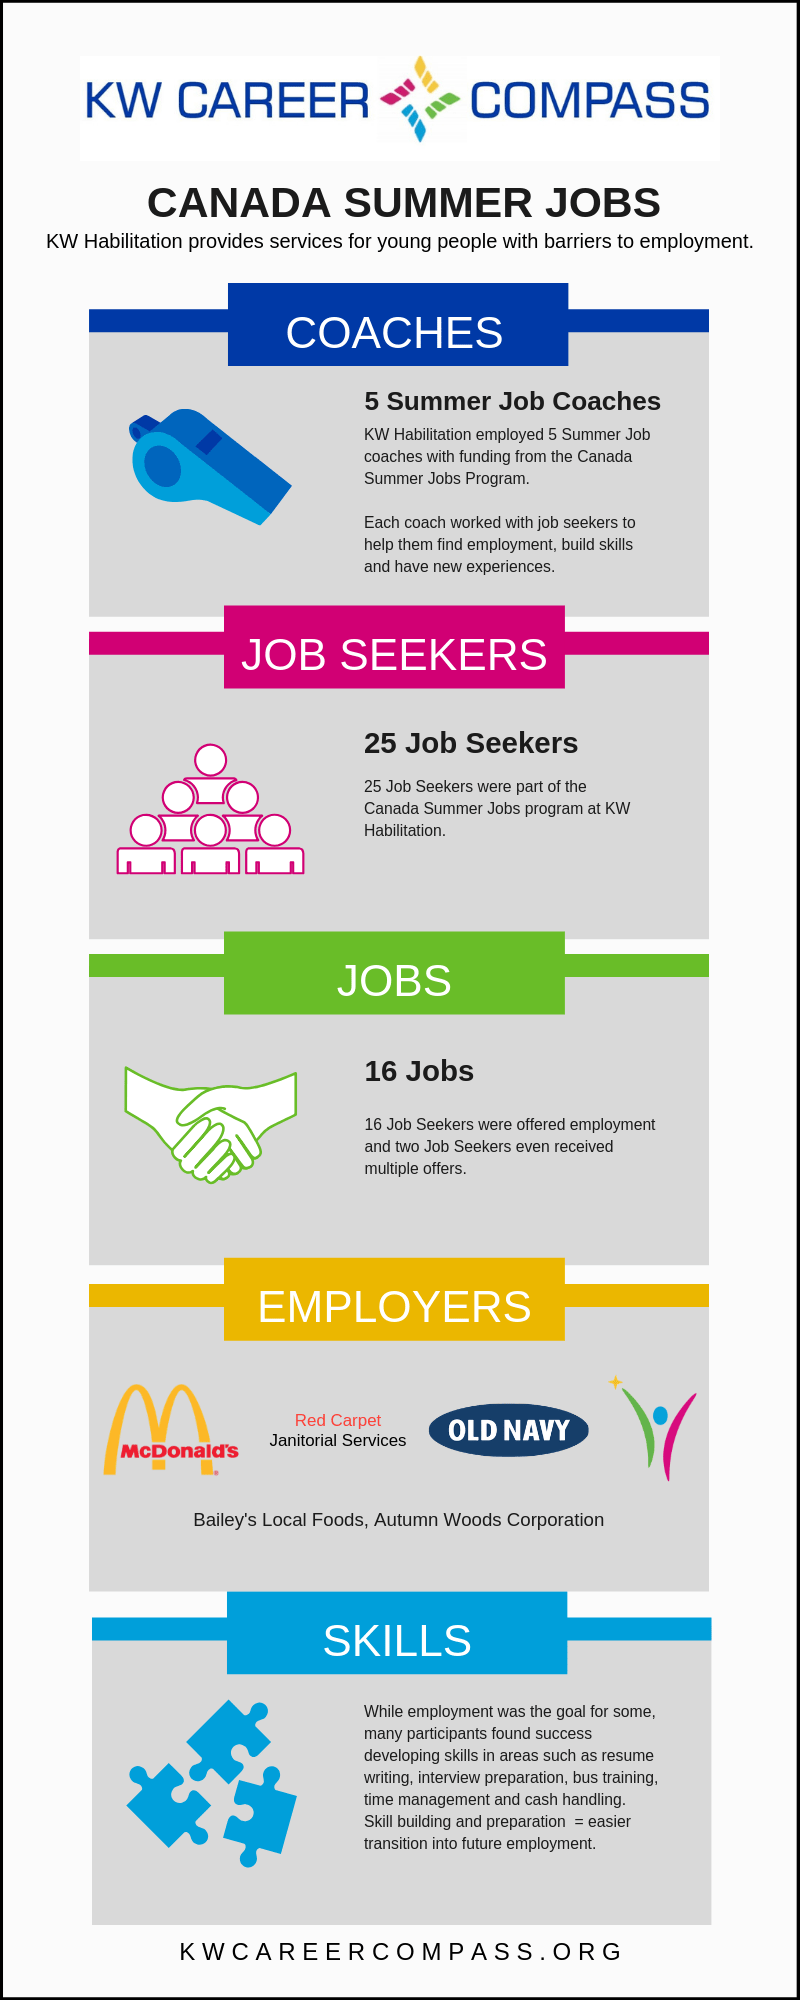 CANADA SUMMER JOBS INFOGRAPHIC 2